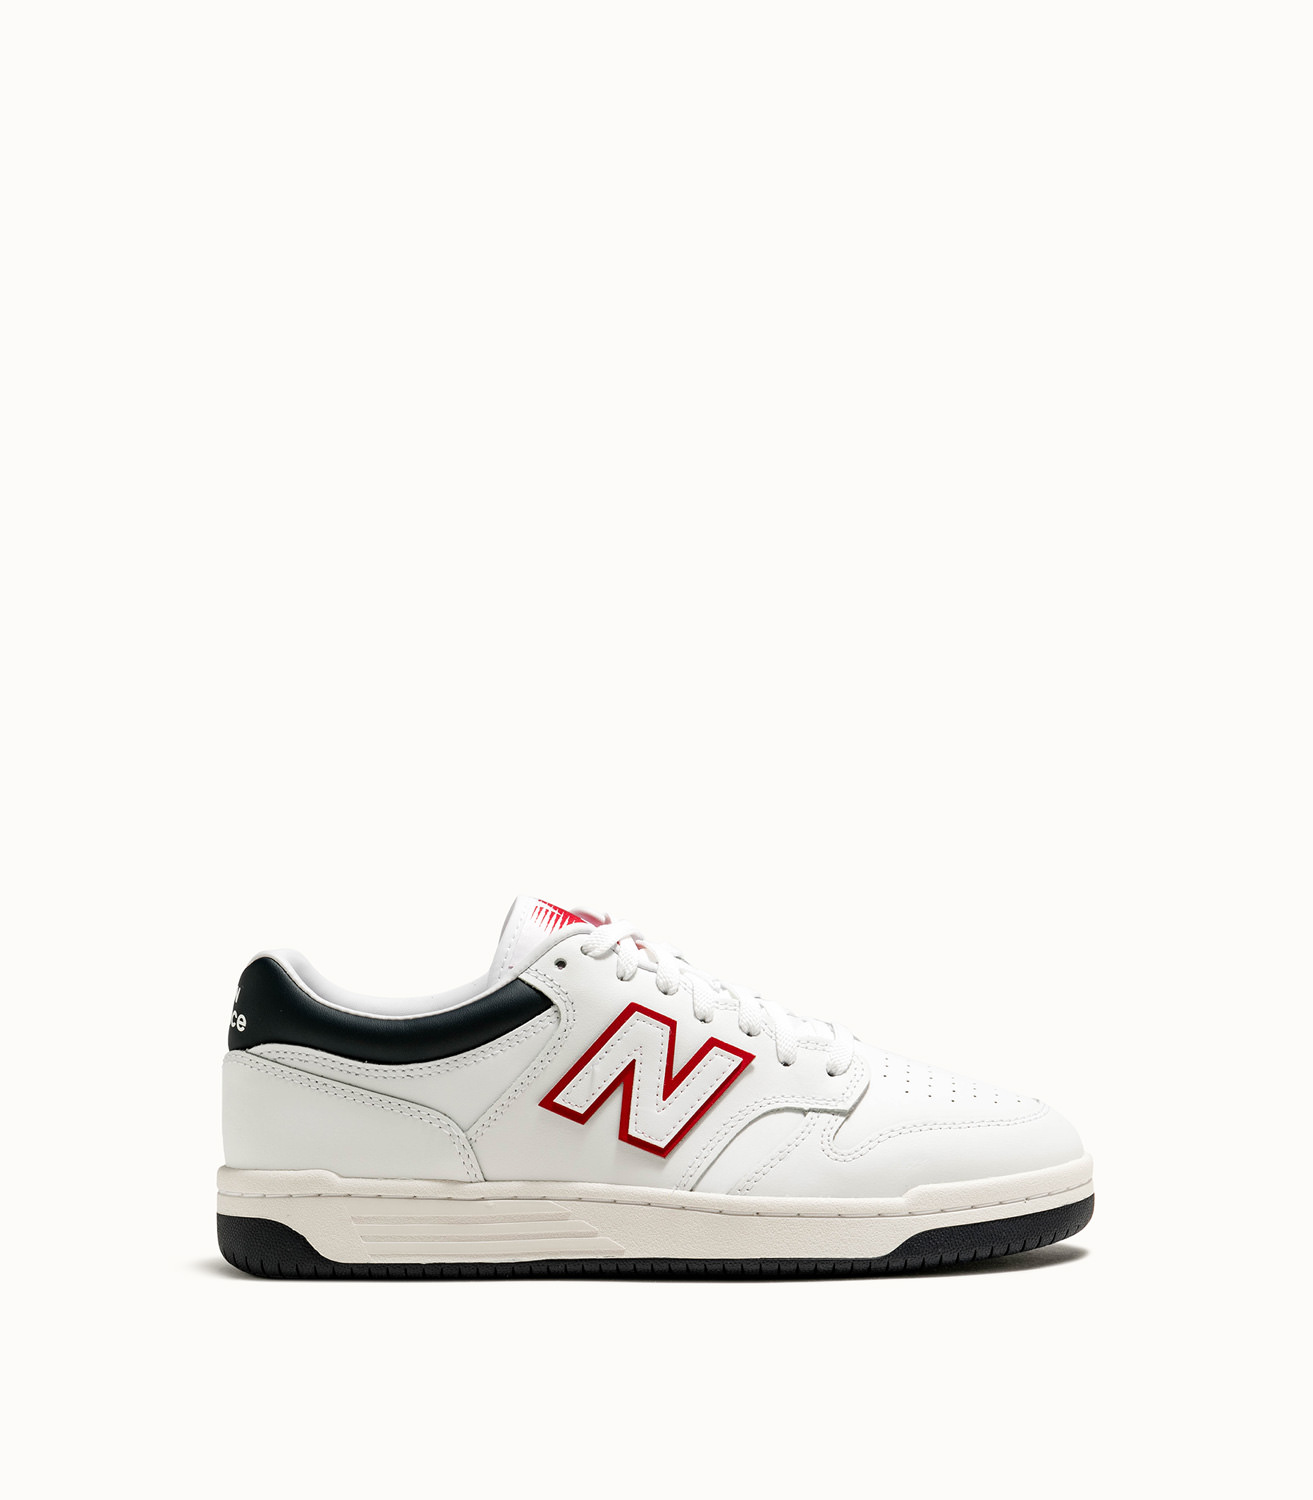 NEW BALANCE LIFESTYLE SNEAKERS COLOR WHITE | Playground